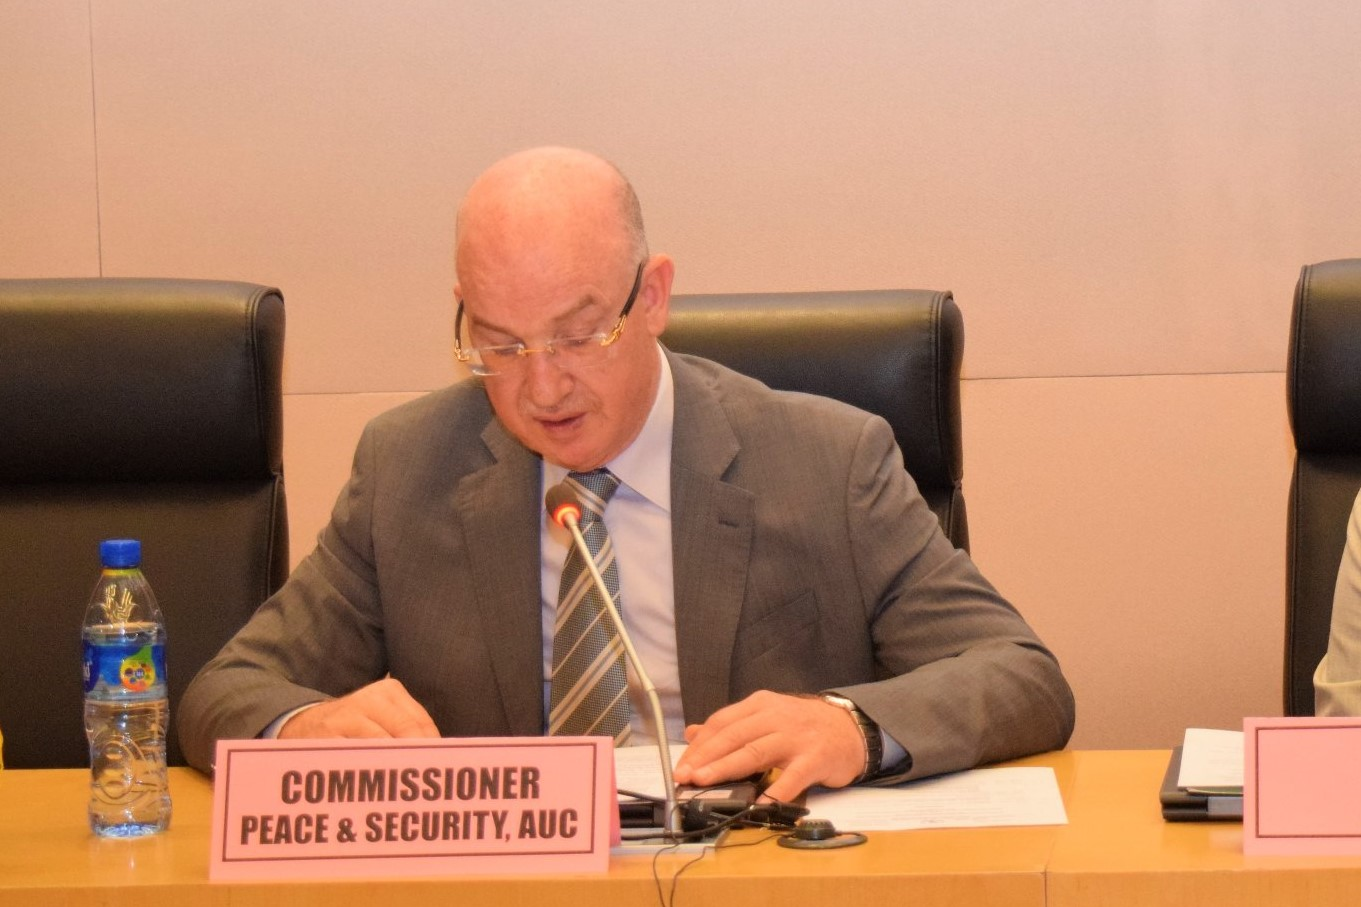 Opening remarks by Ambassador Smaïl Chergui Commissioner for Peace and Security at the Commemoration of the International Day for Mine Awareness and Assistance in Mine Action